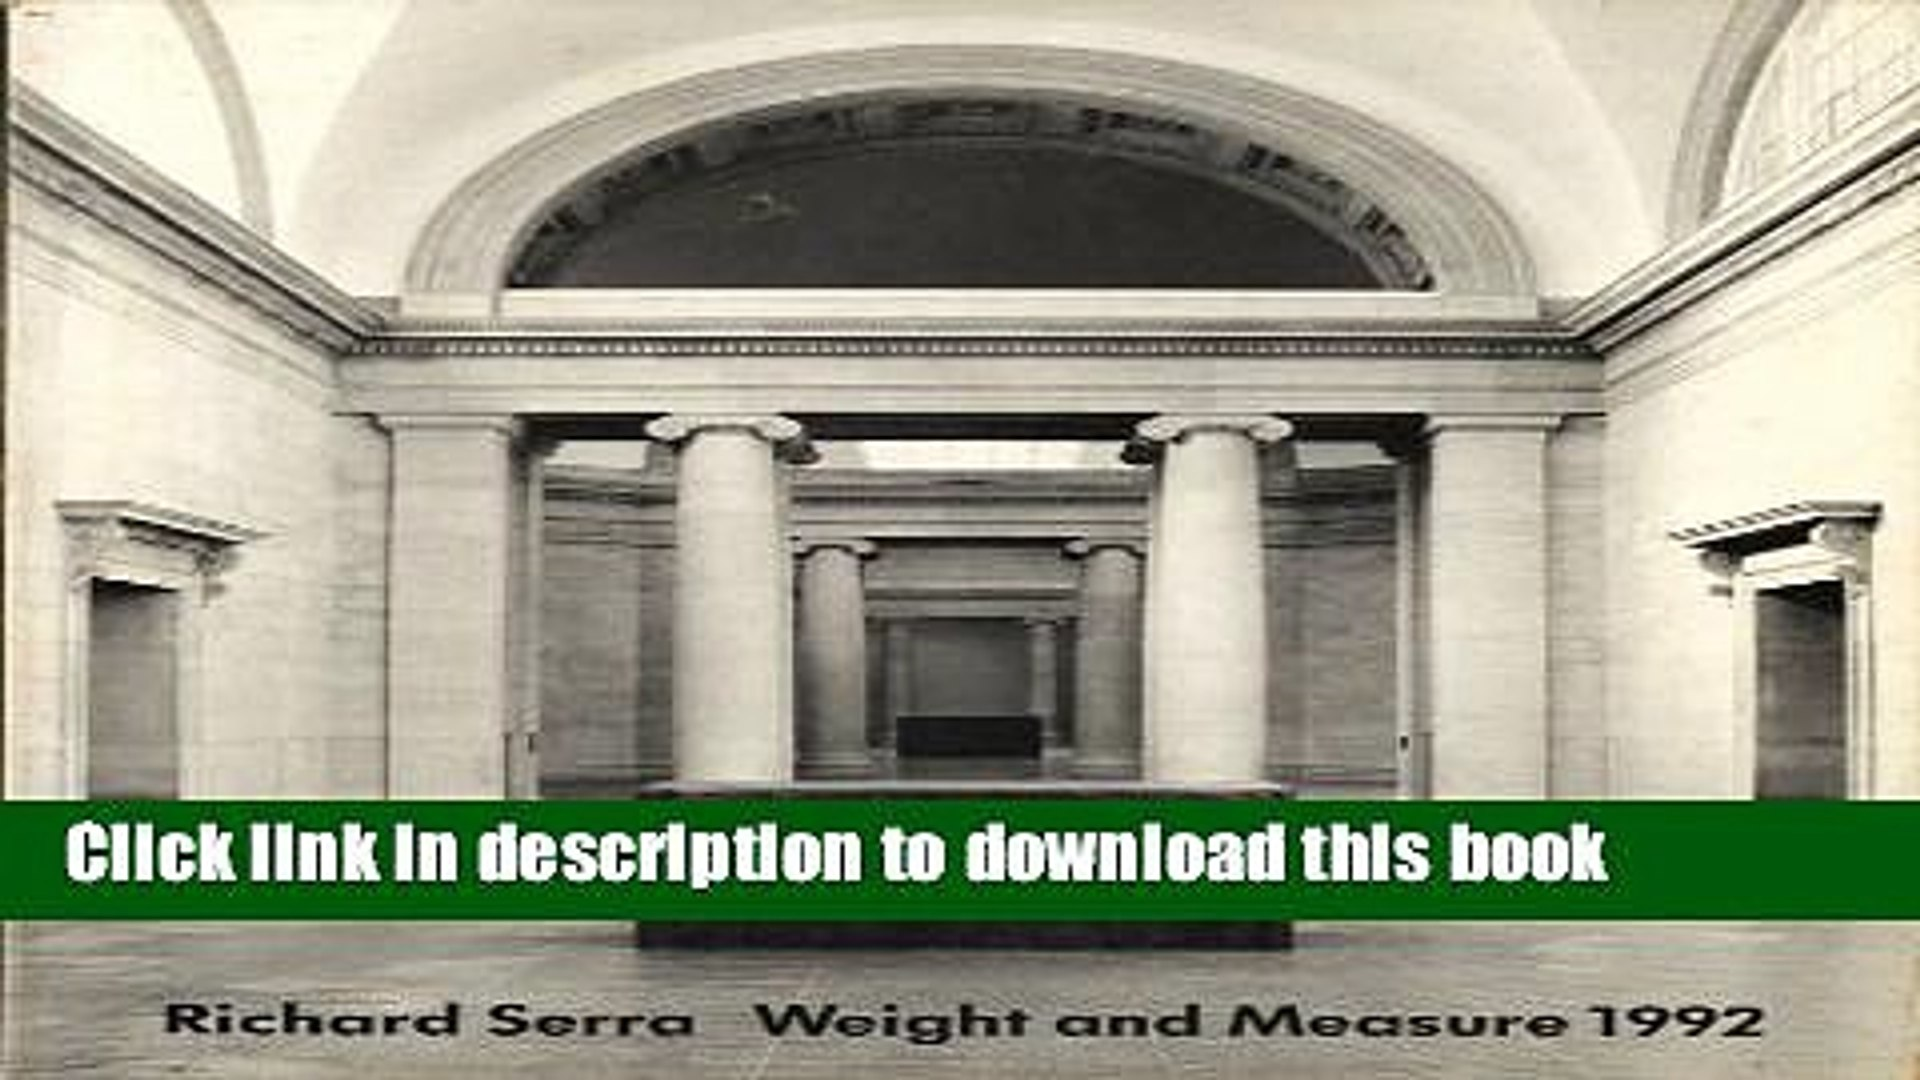 Read Book Richard Serra: Weight and Measure 1992 : 30 September 1992-15 January 1993 E-Book Free